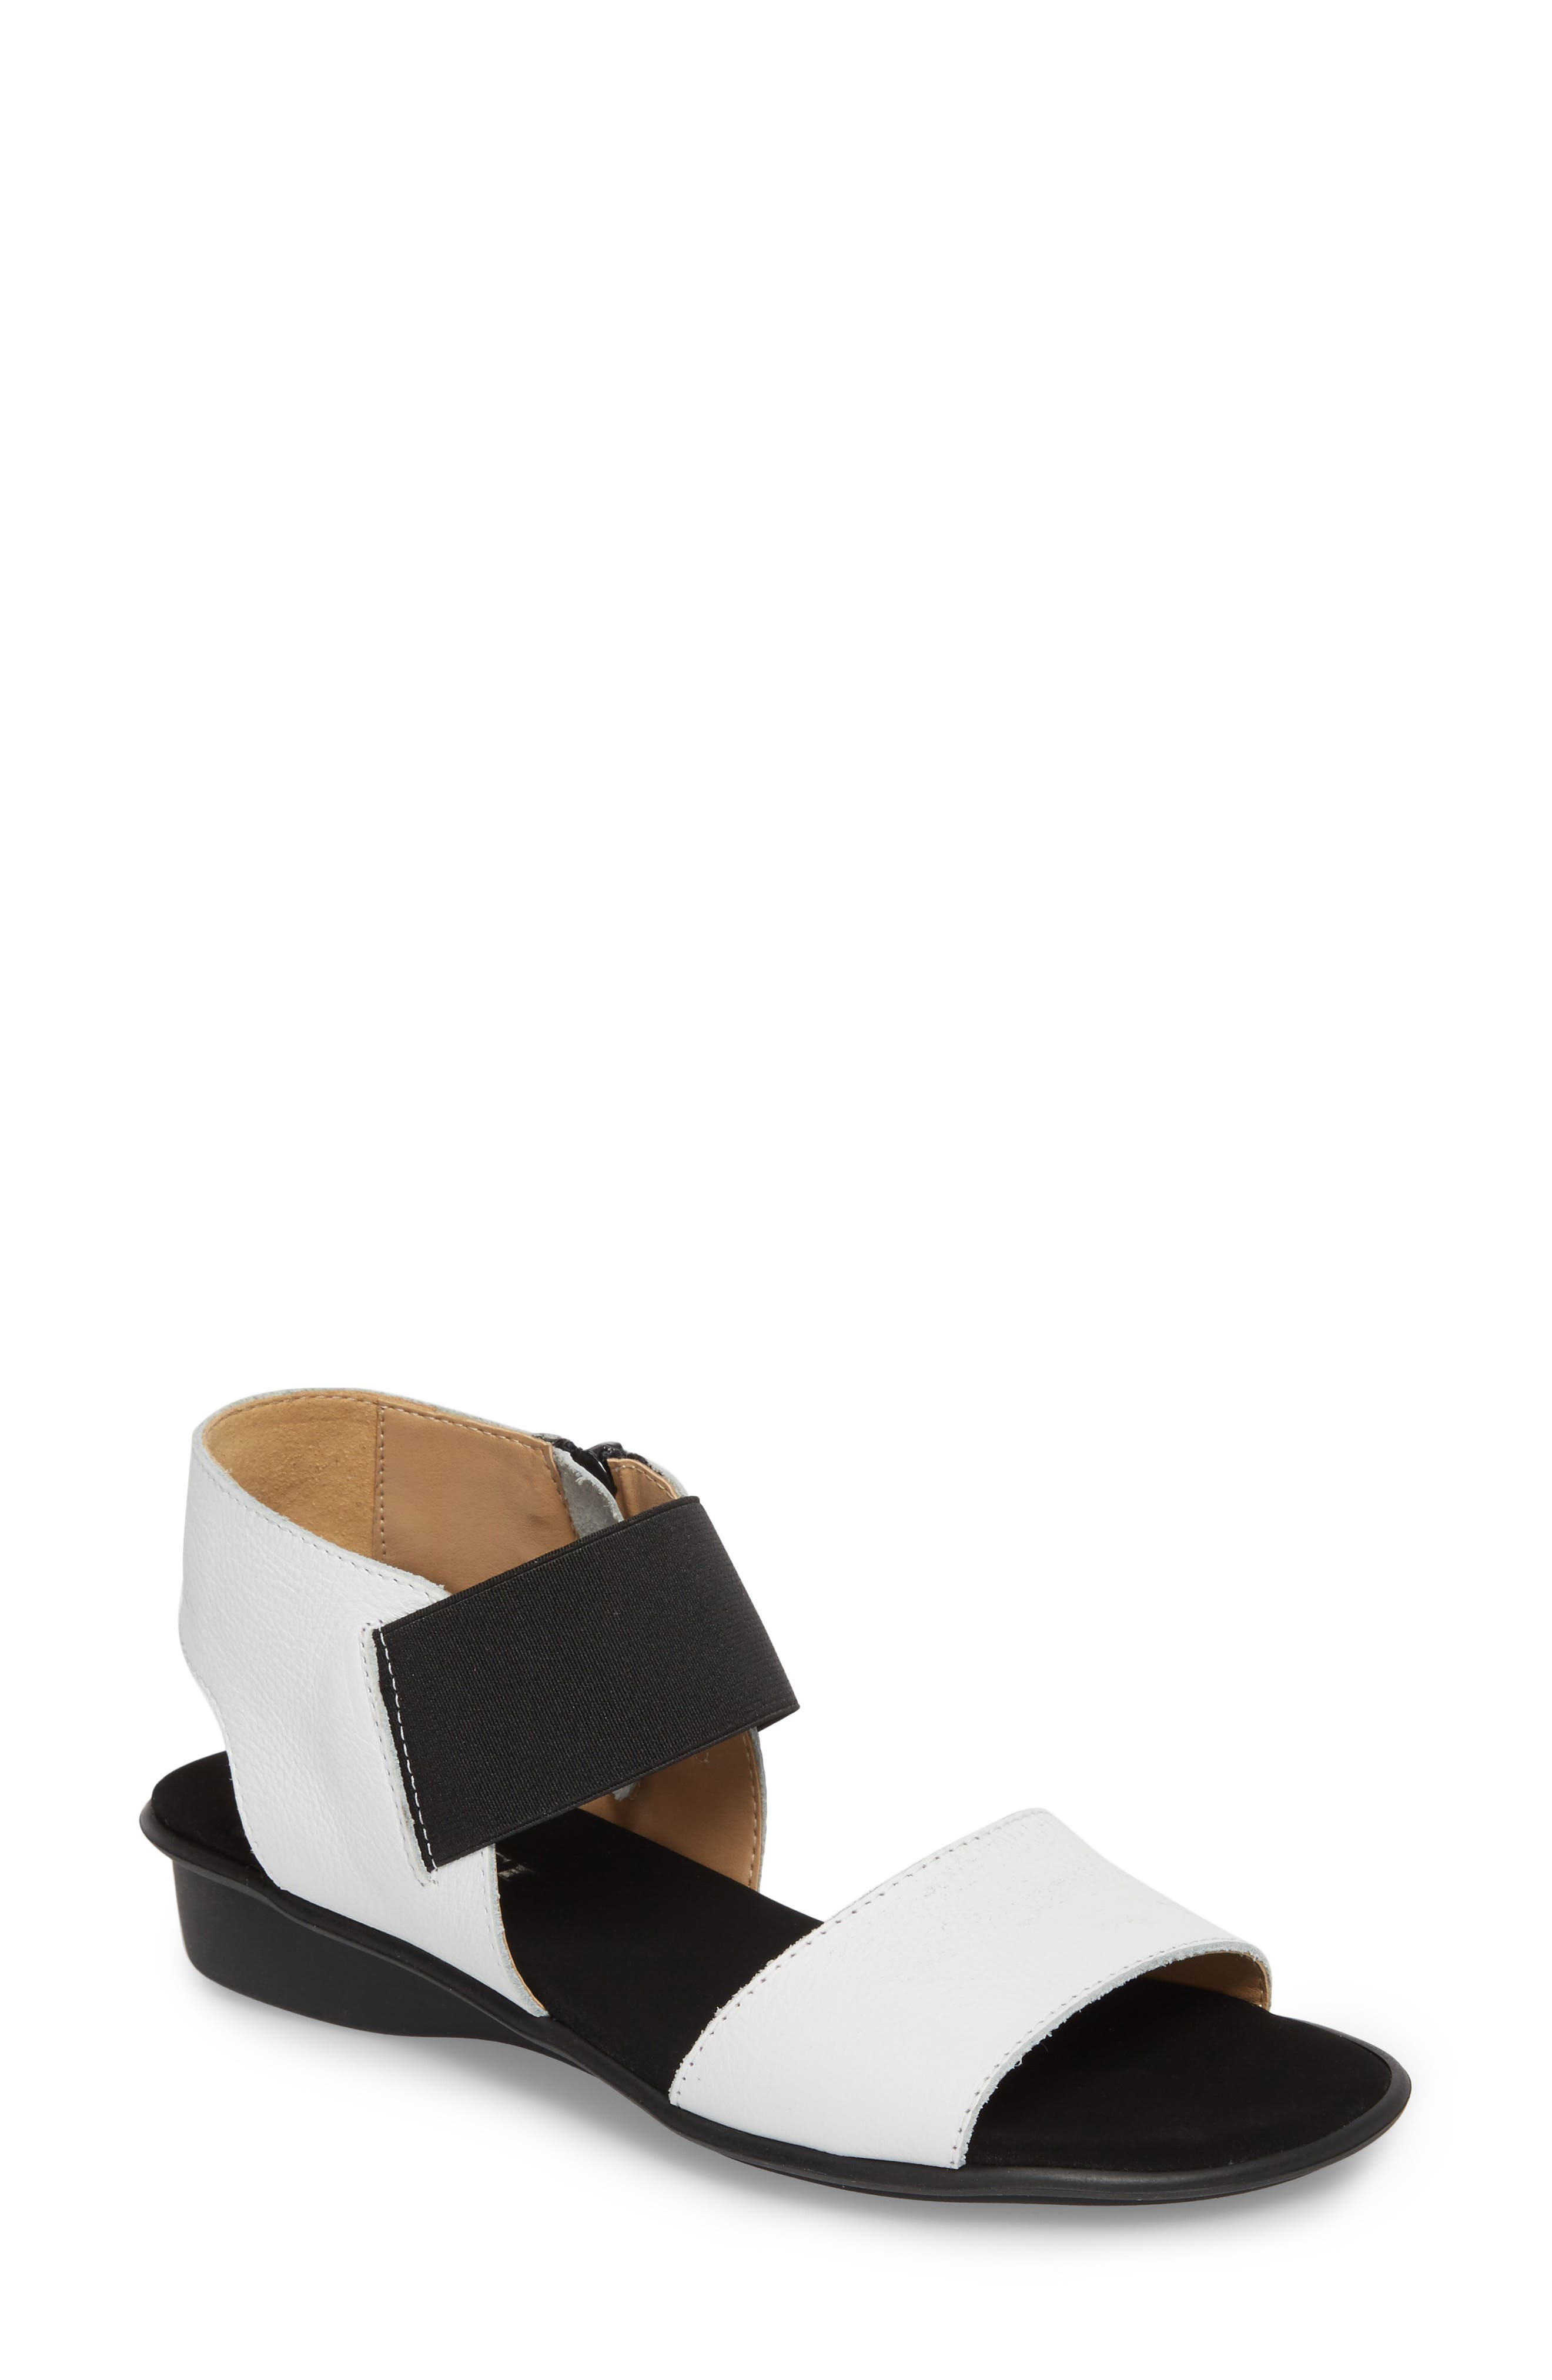 Eirlys Sandal,                         Main,                         color, WHITE FABRIC